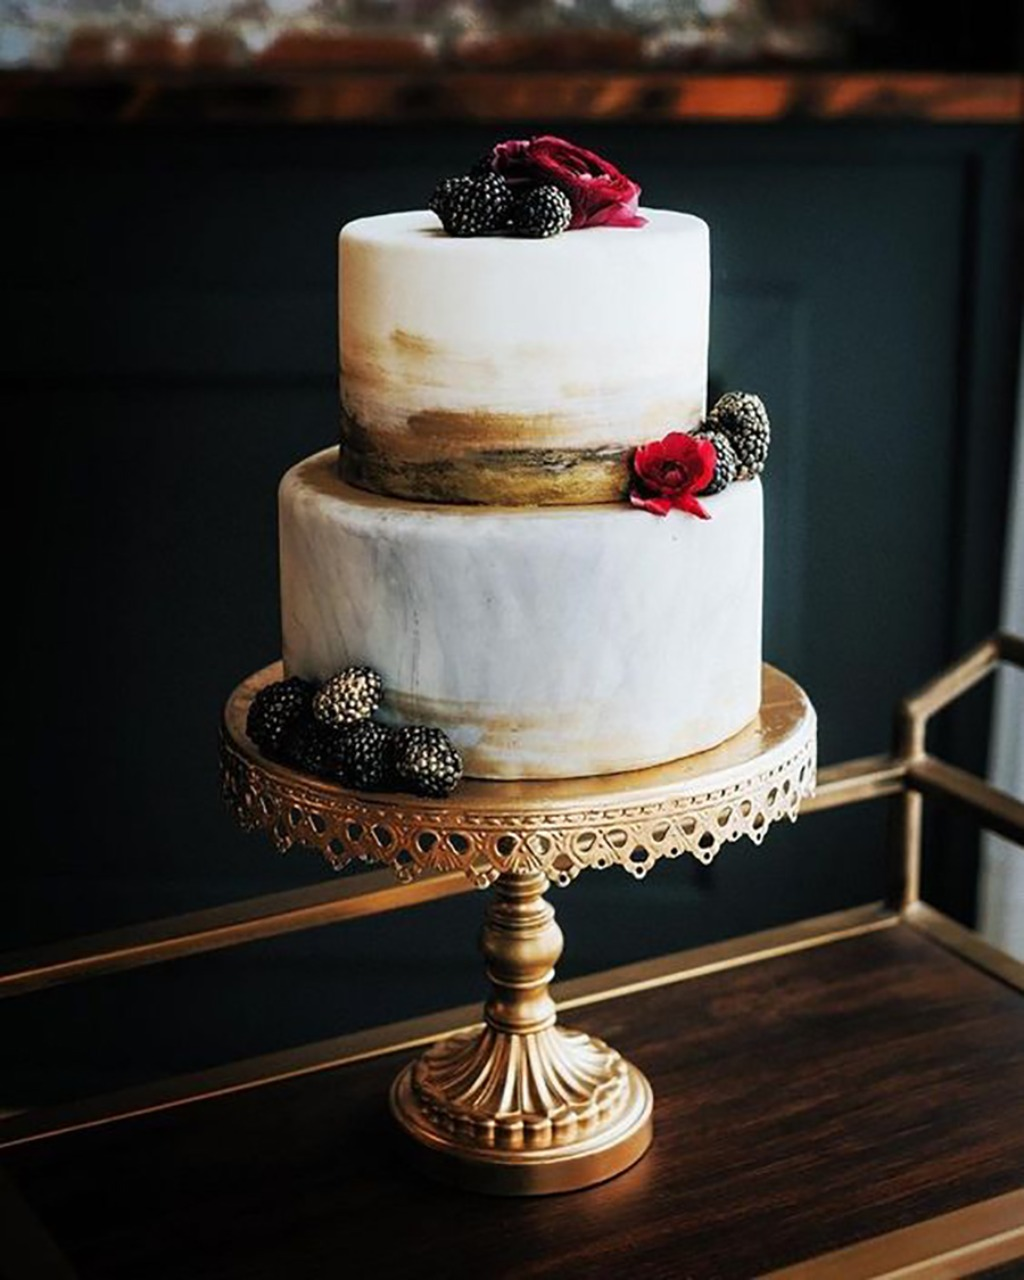 Opulent Treasures offers a gorgeous collection of wedding cake and dessert stands for your wedding day! Our treasures have been created